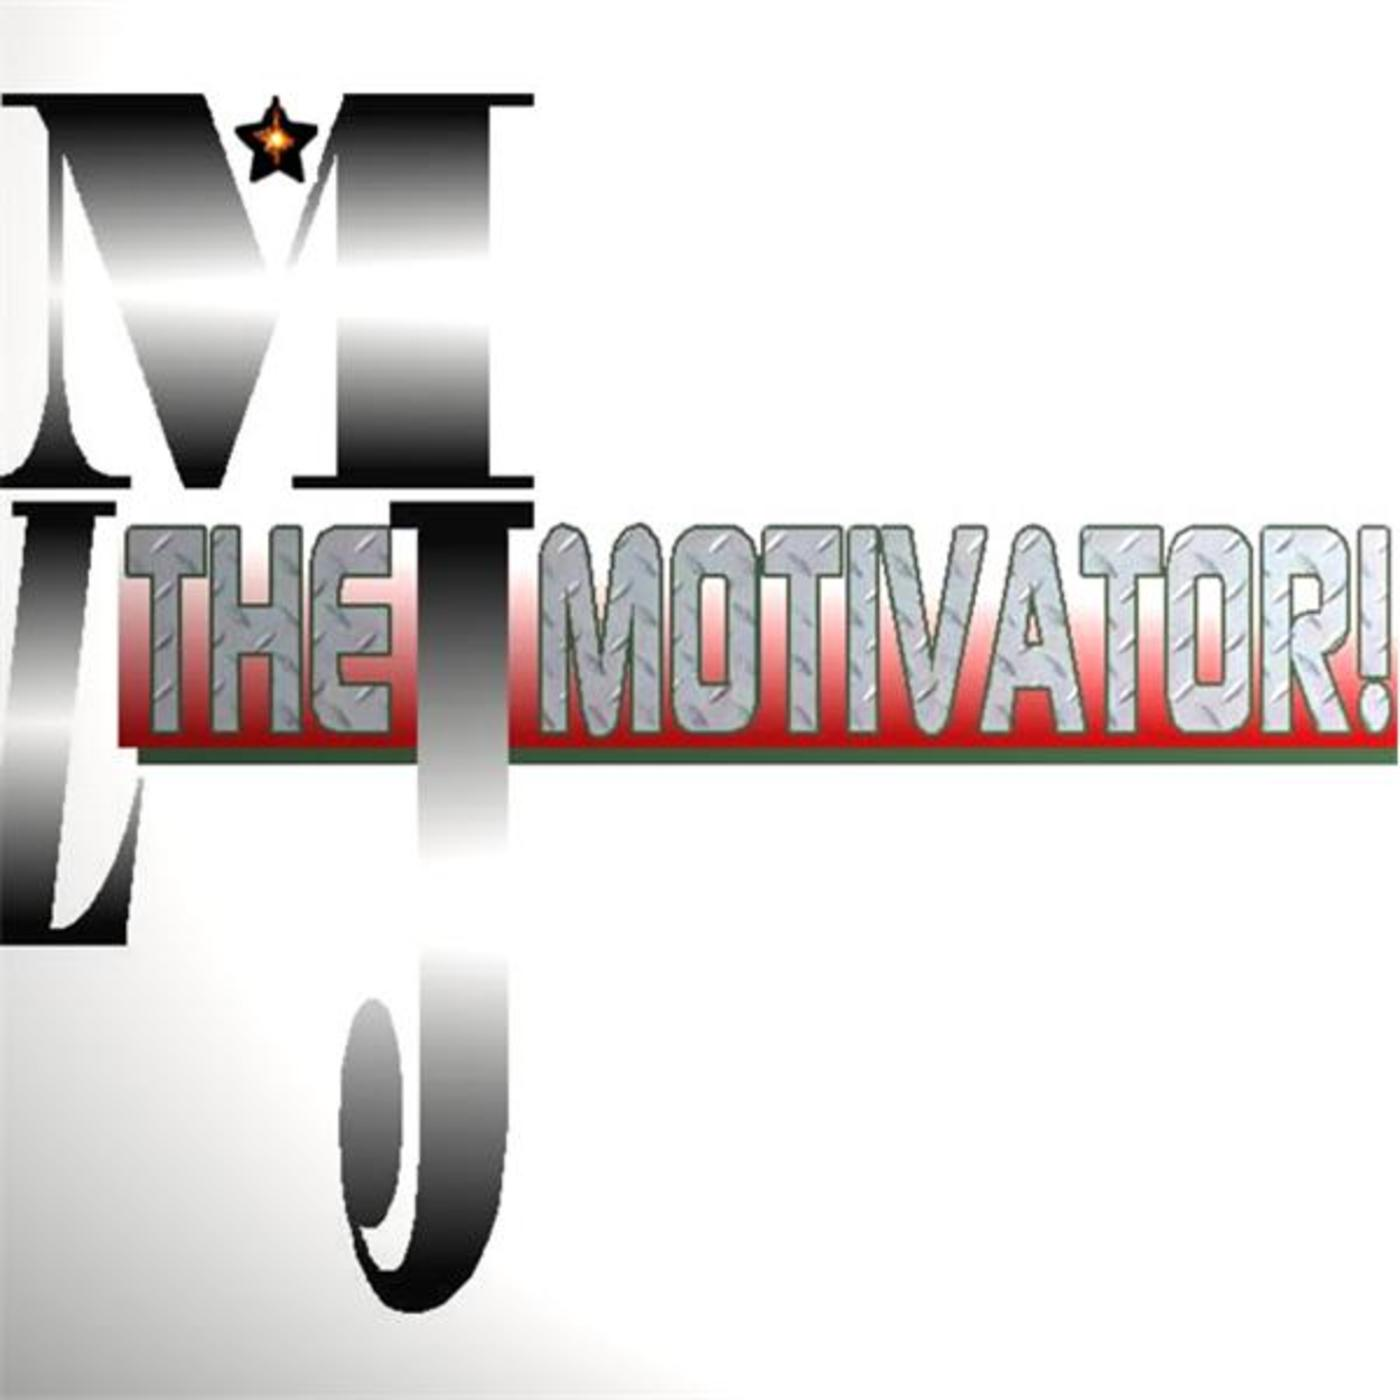 THE MOTIVATOR! Motivational Speaker and PublishedAuthor